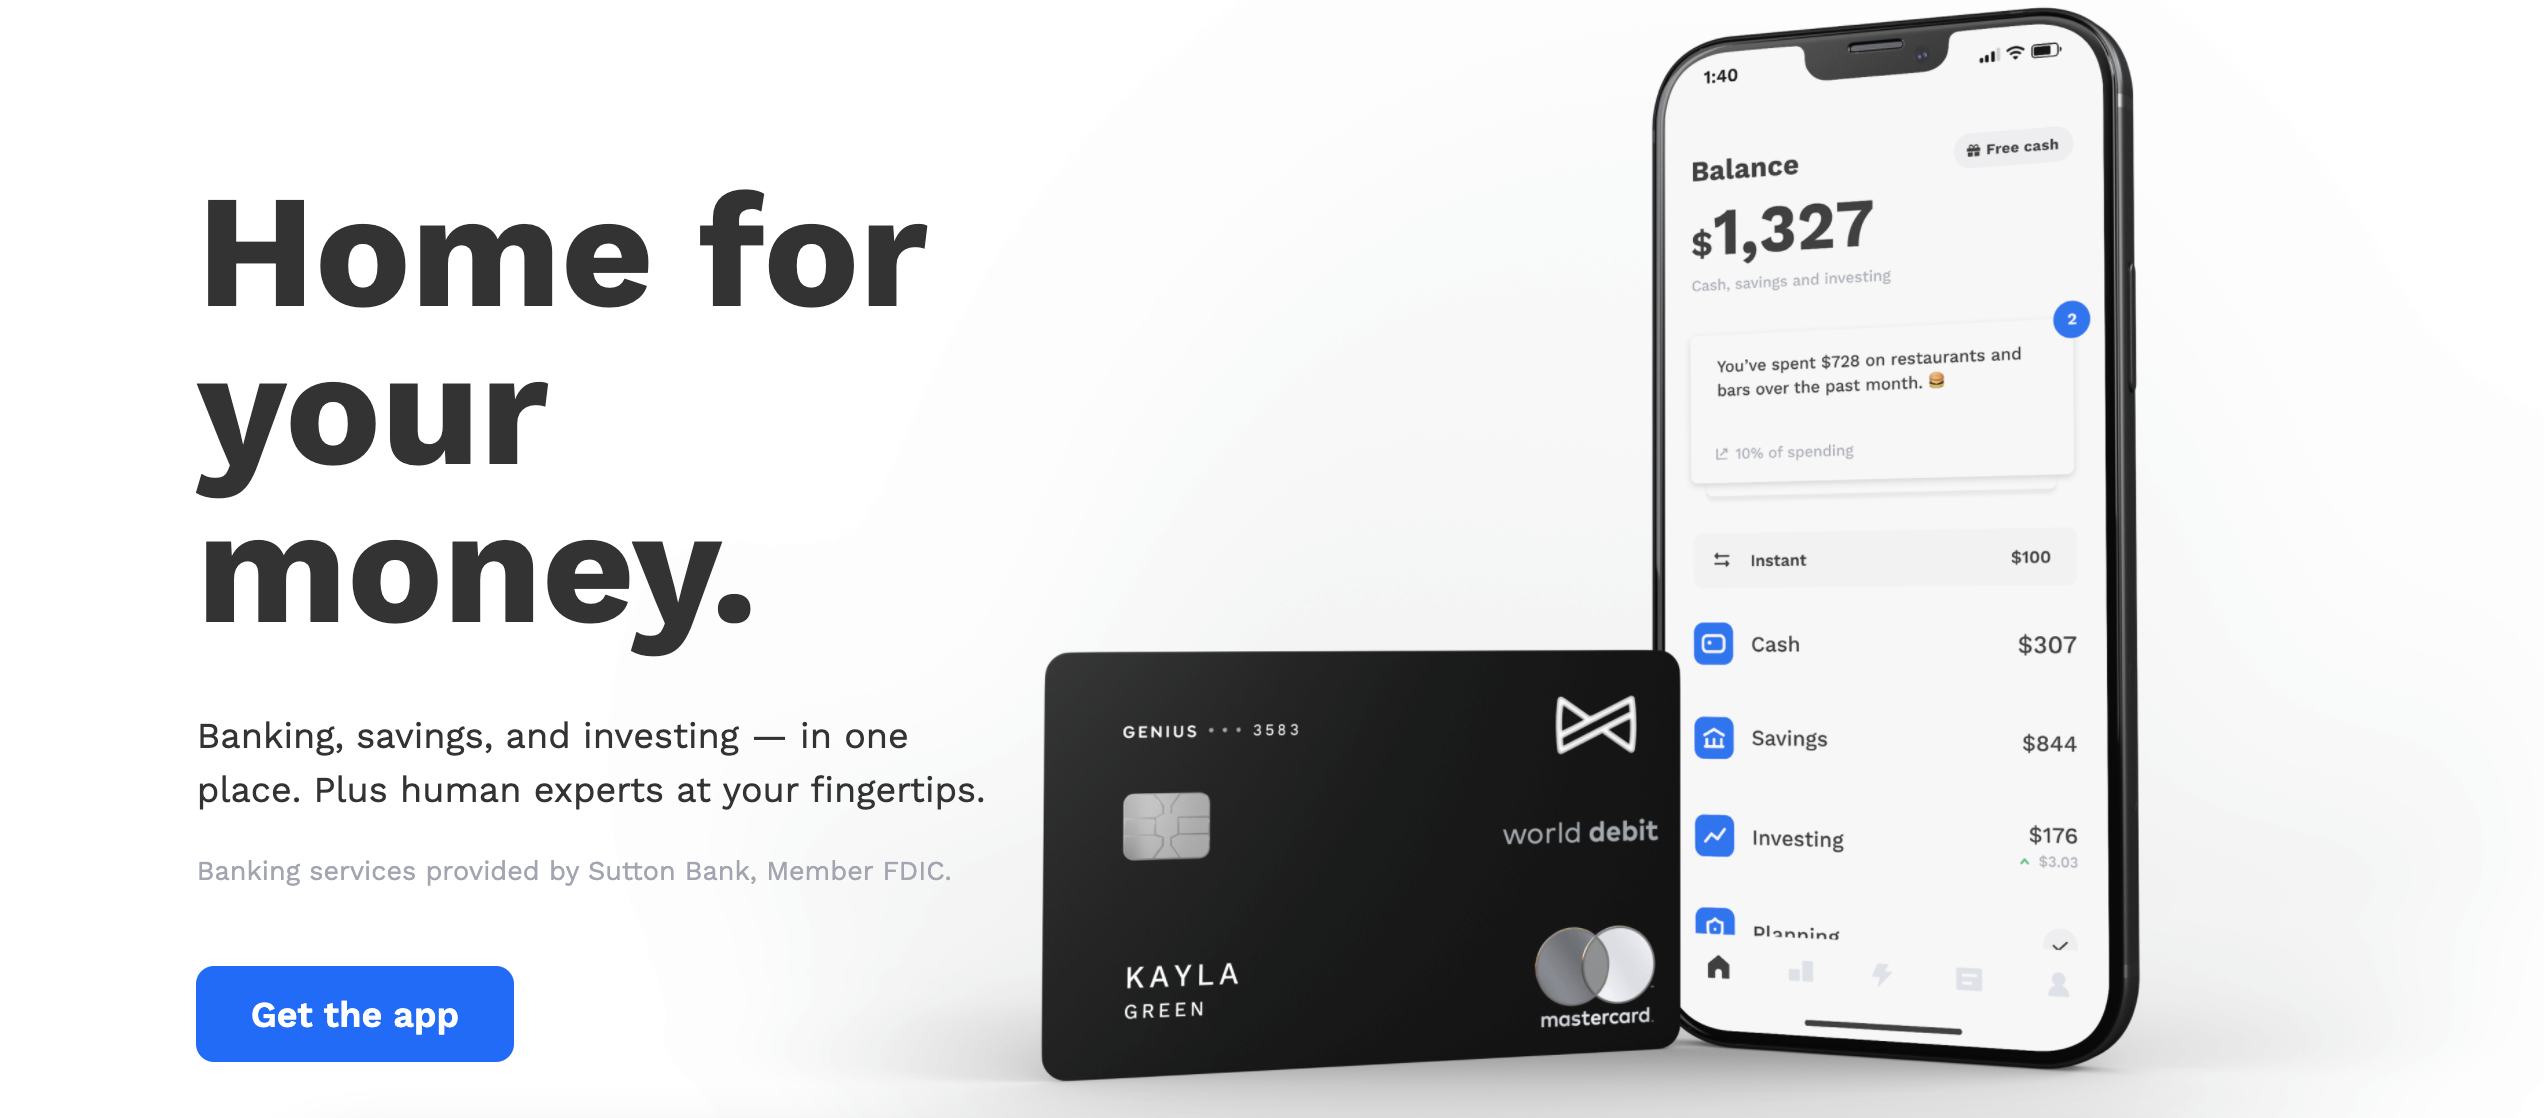 Like many emerging Fintechs, Albert strives to be an all-in-one solution for your finances. The app is more like a bank than a budgeting service, but it helps you save by giving recommendations and automatically putting your money toward goals both big and small. Image from albert.com.